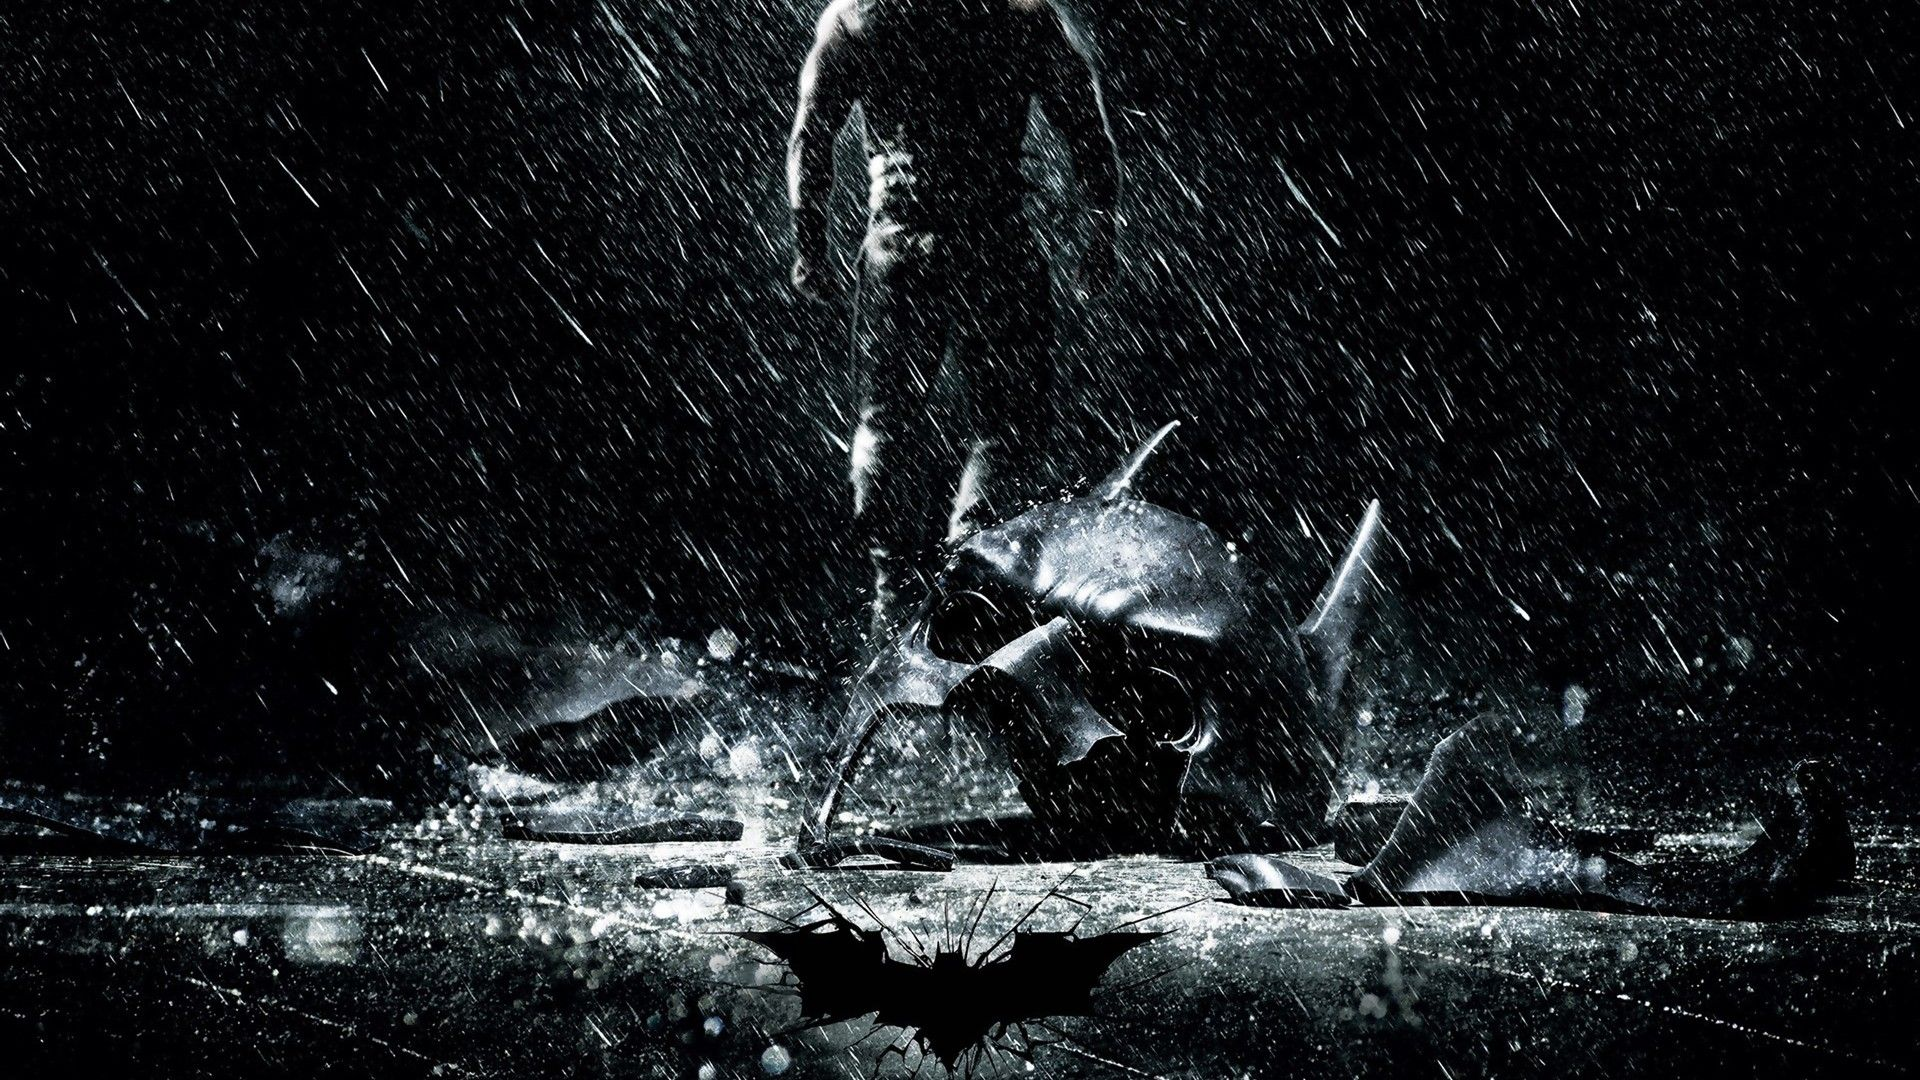 Batman wallpaper Movie wallpapers Batman Pinterest Movies